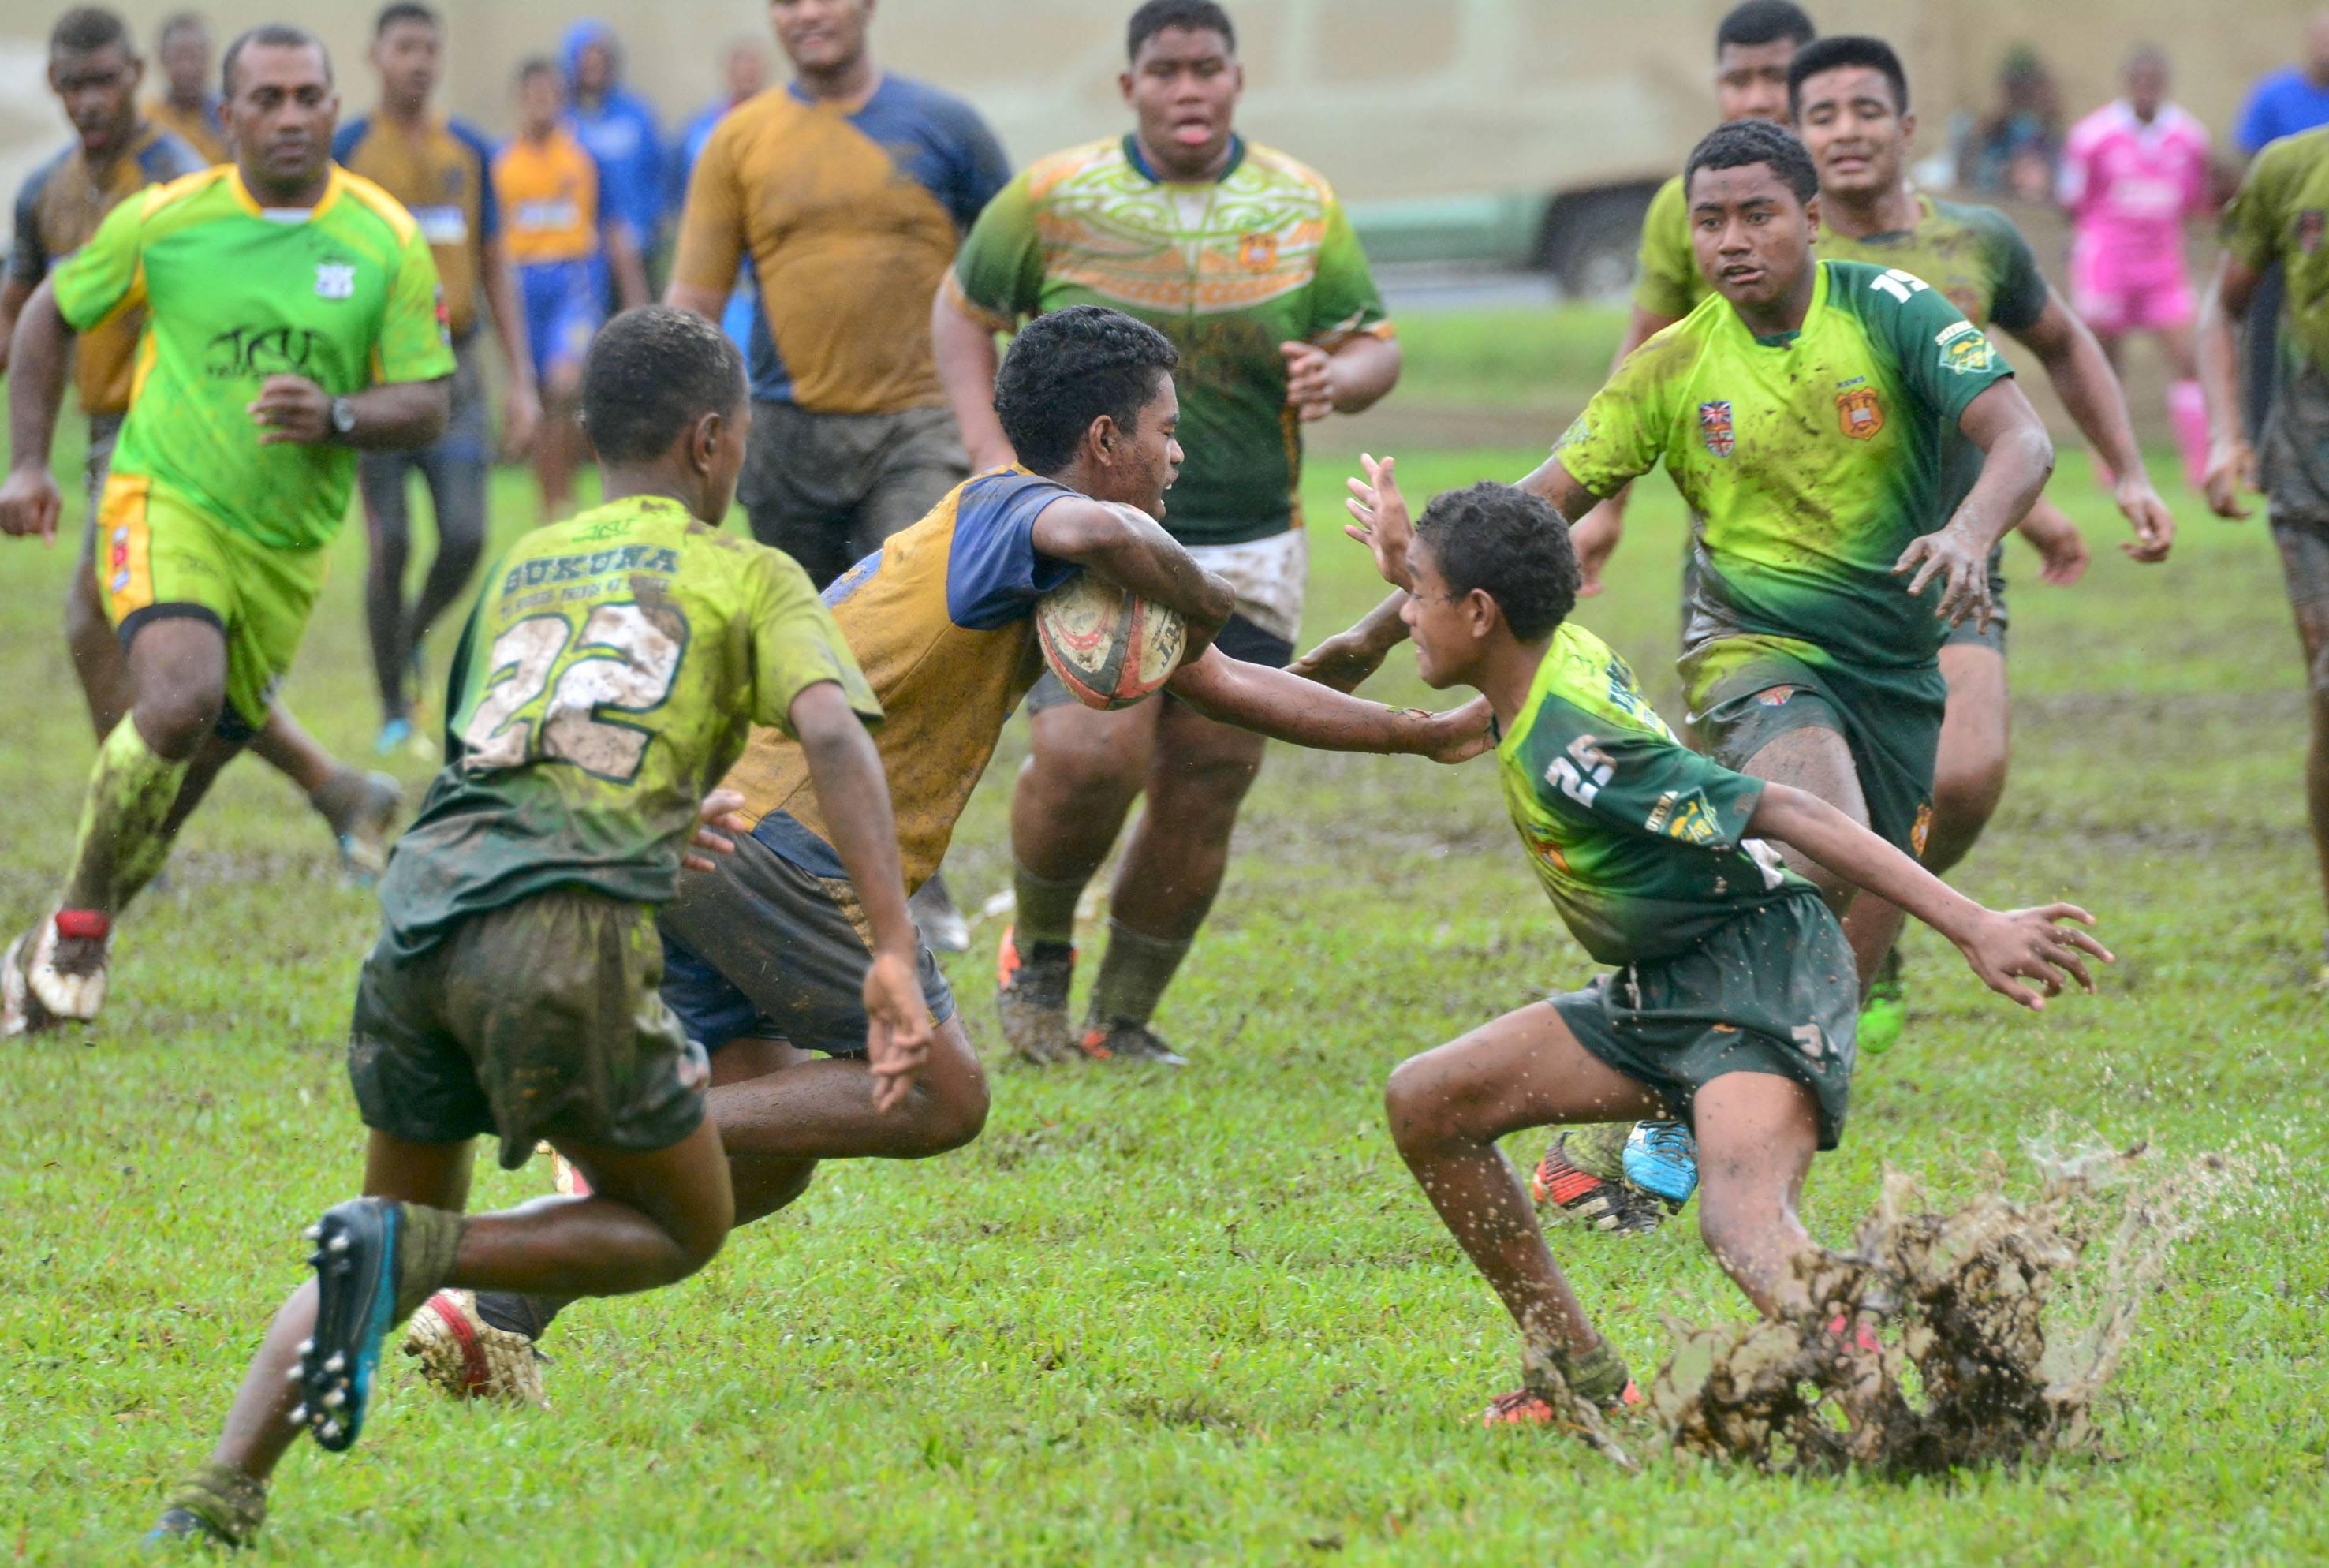 The Fiji Times » Southern Zone: Secondary school rugby results